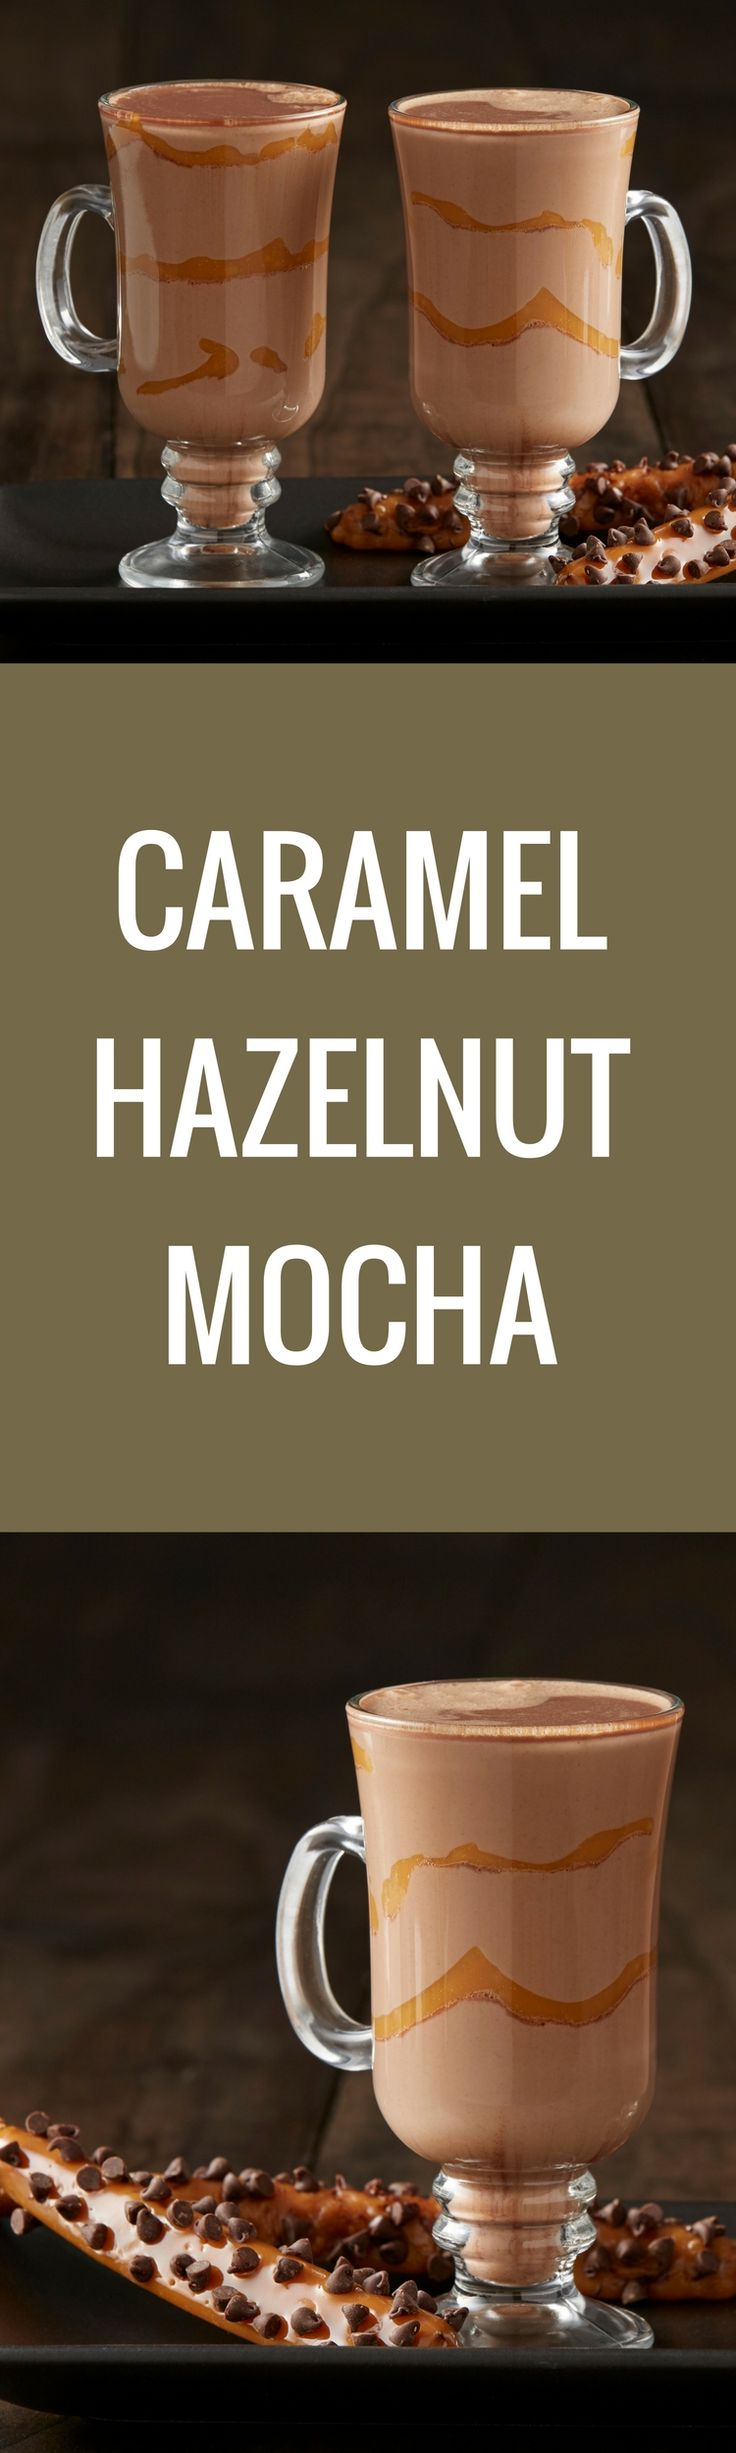 Coffee, chocolate and caramel – what combination could be better than the three of these in this Caramel Hazelnut Mocha?